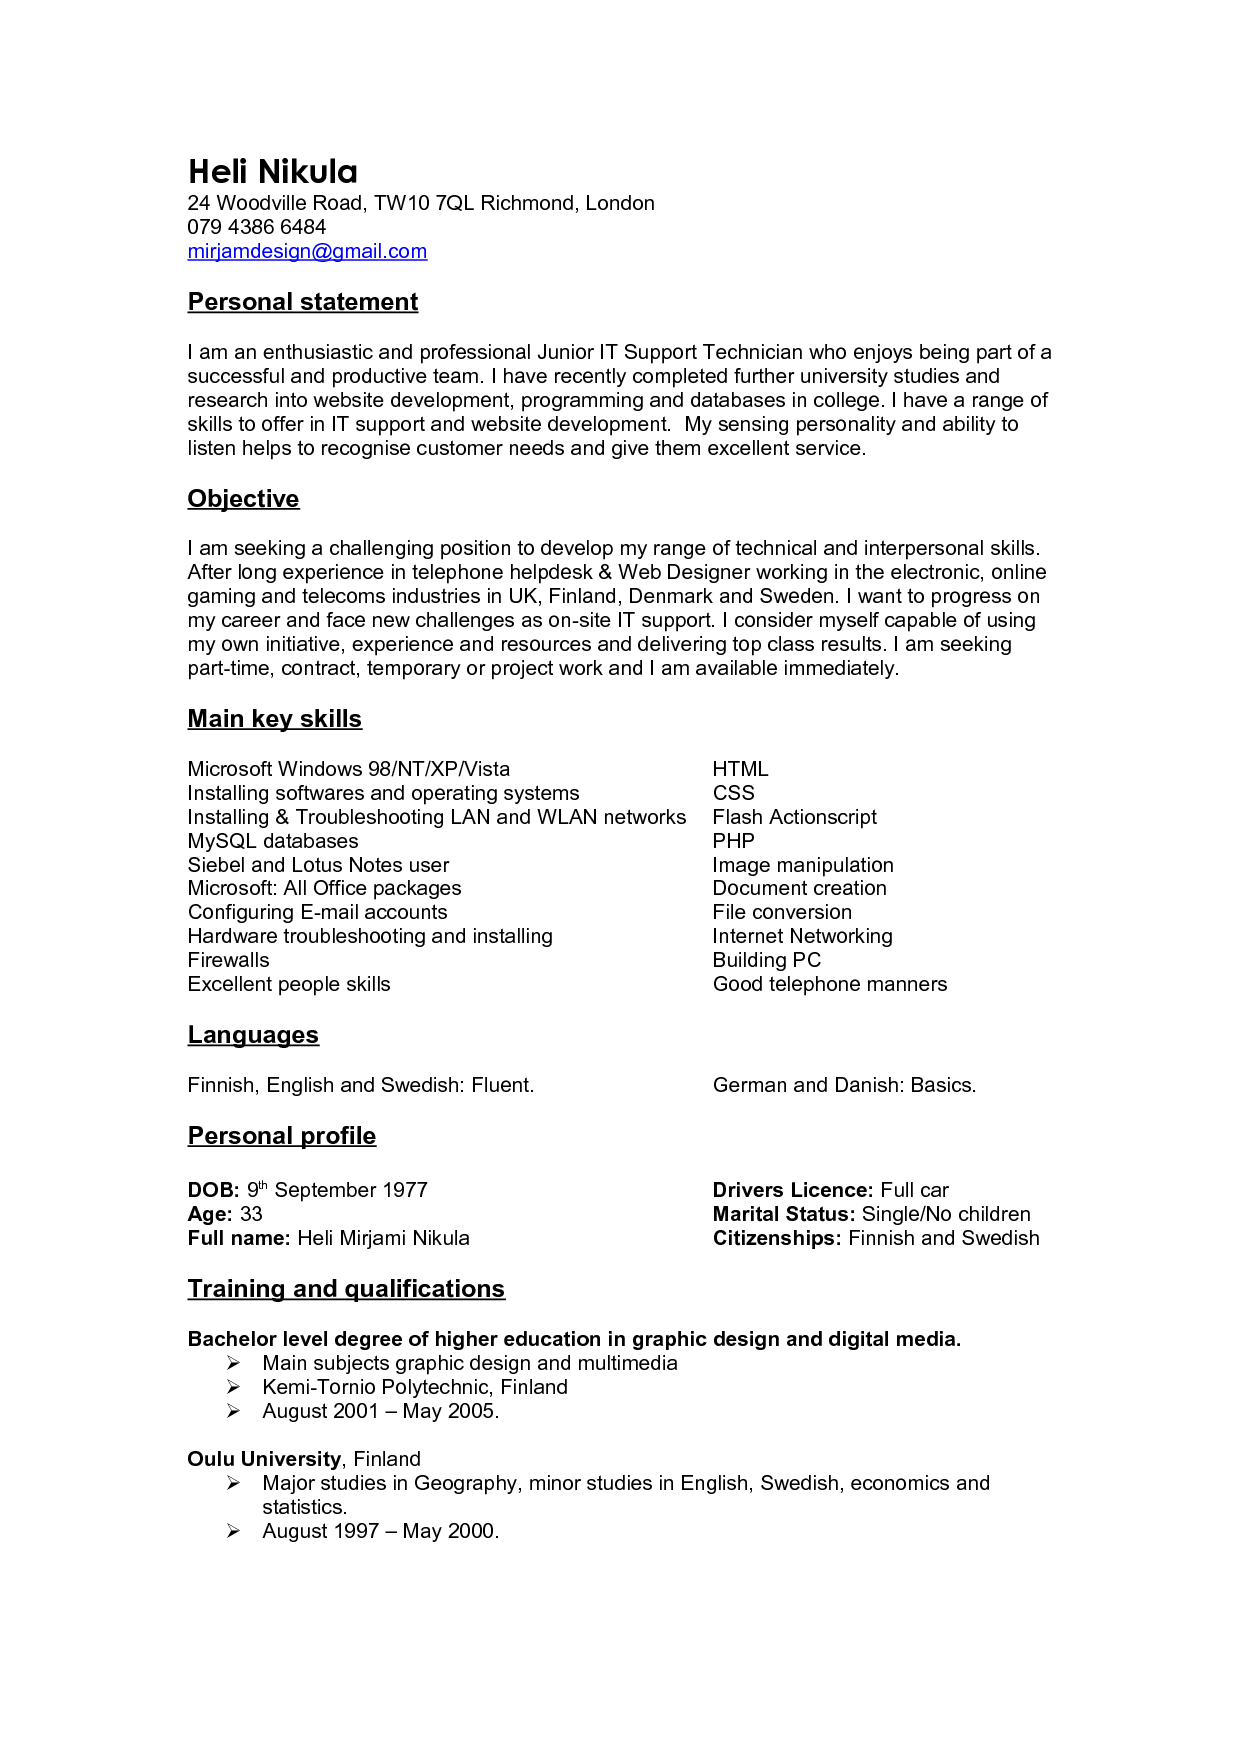 High Quality Personal Branding Statement Resume Examples Regard To Branding Statement Resume